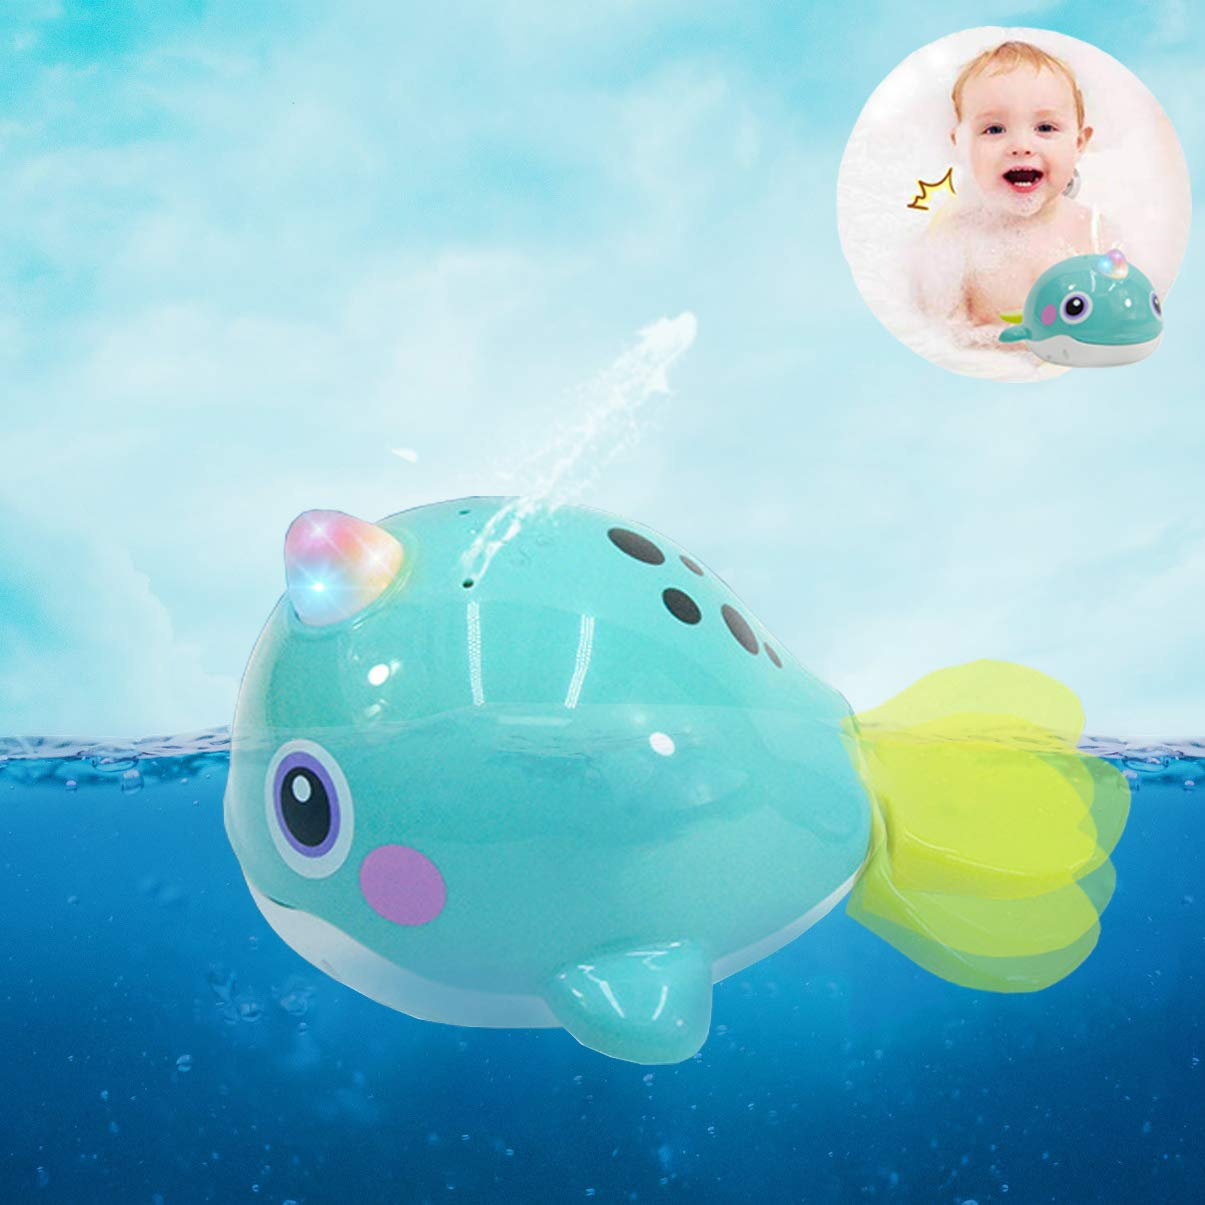 Sytle-Carry Water Squirt Baby Bath Toy - Water Spray Sprinkler Waterproof Bathub Spouting Pool Toys W/ LED Light Bathtime Shower Gift for 12 18 Months 1 2 Years Toddler Infant Boys Girls Kids (8101)